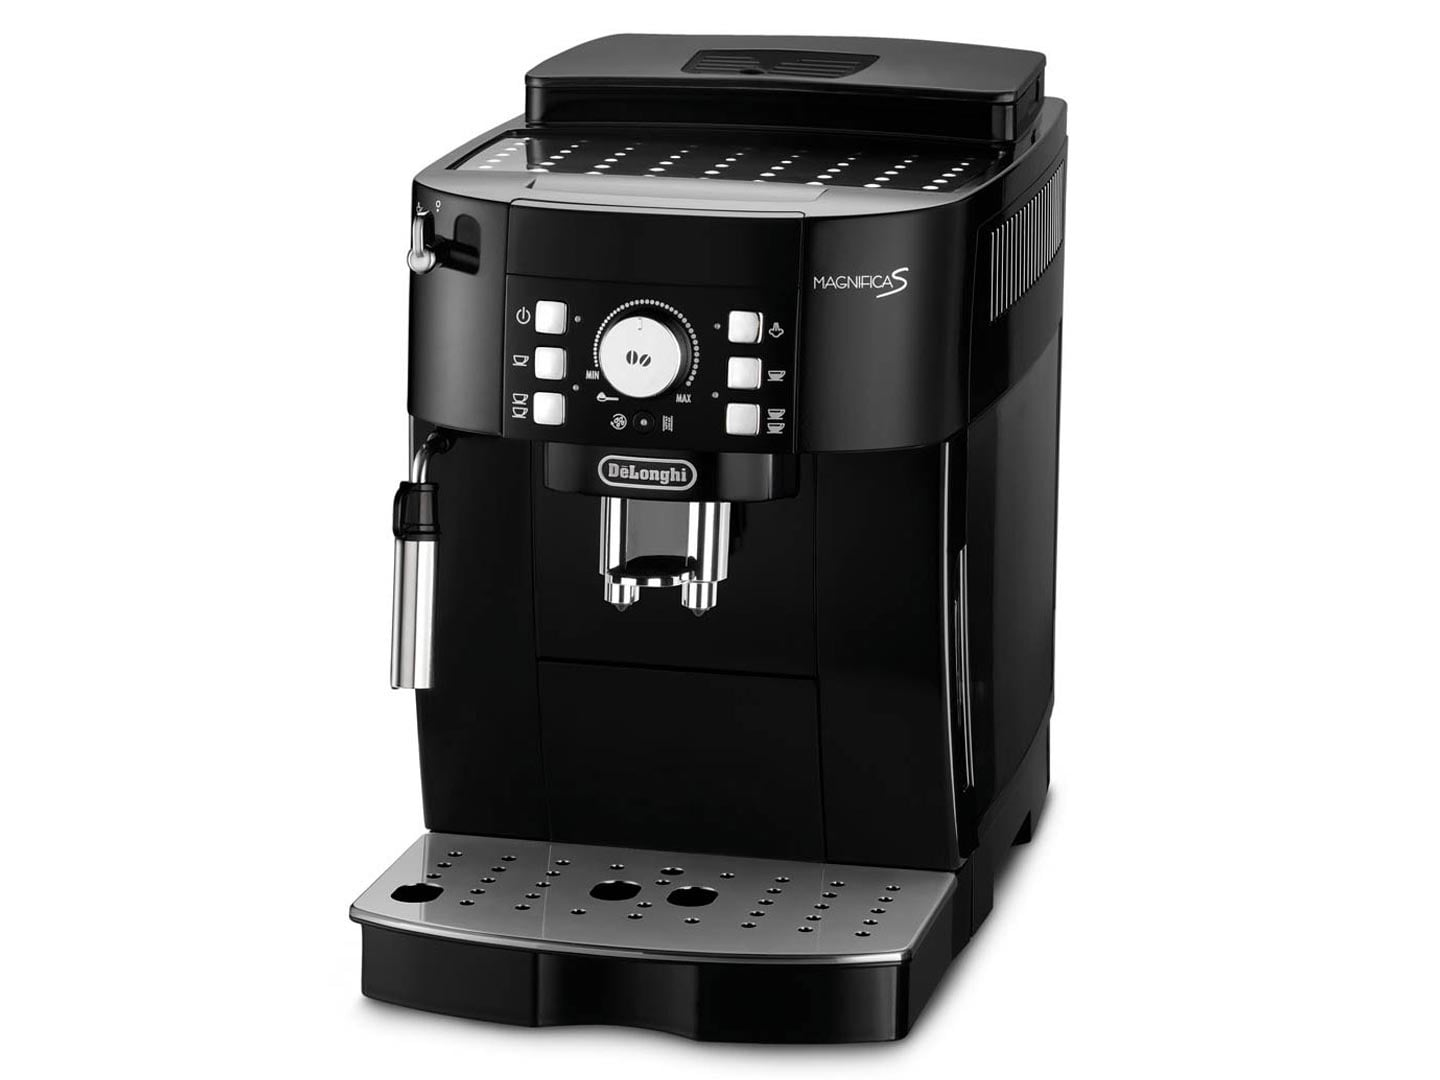 Delonghi magnifica s manual